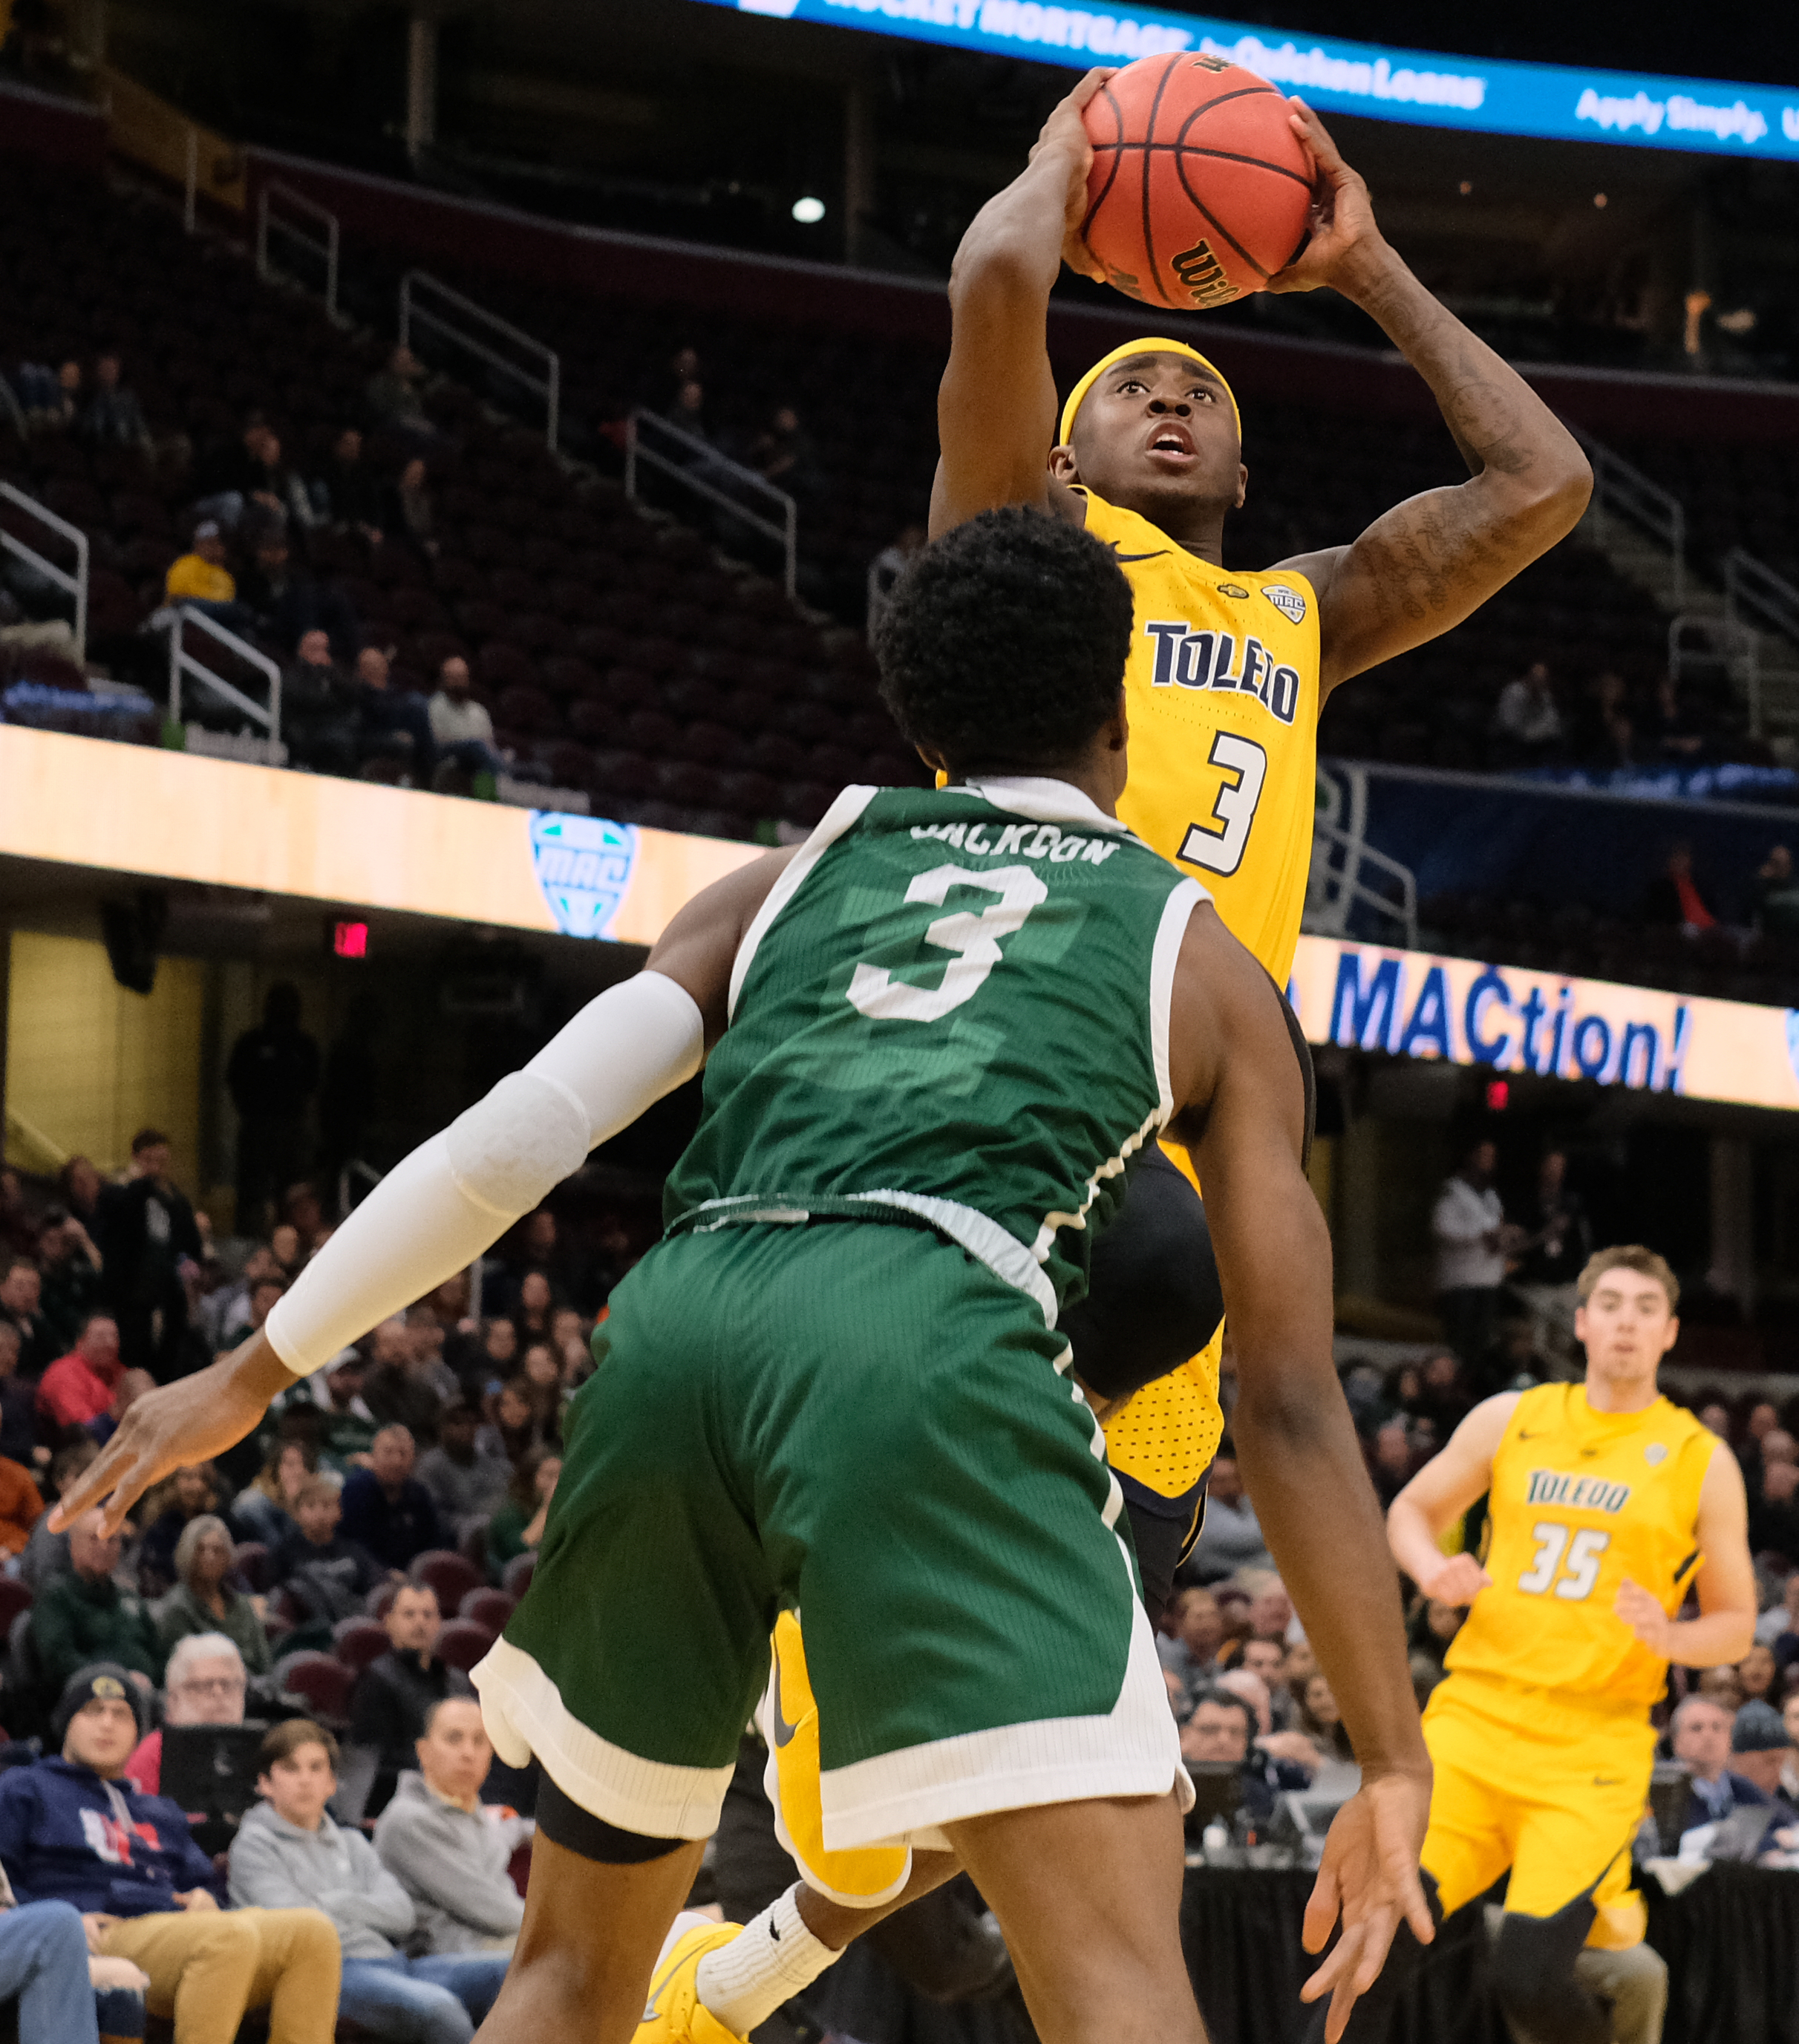 Jackson drains late 3-pointer as Toledo wins thriller in ...